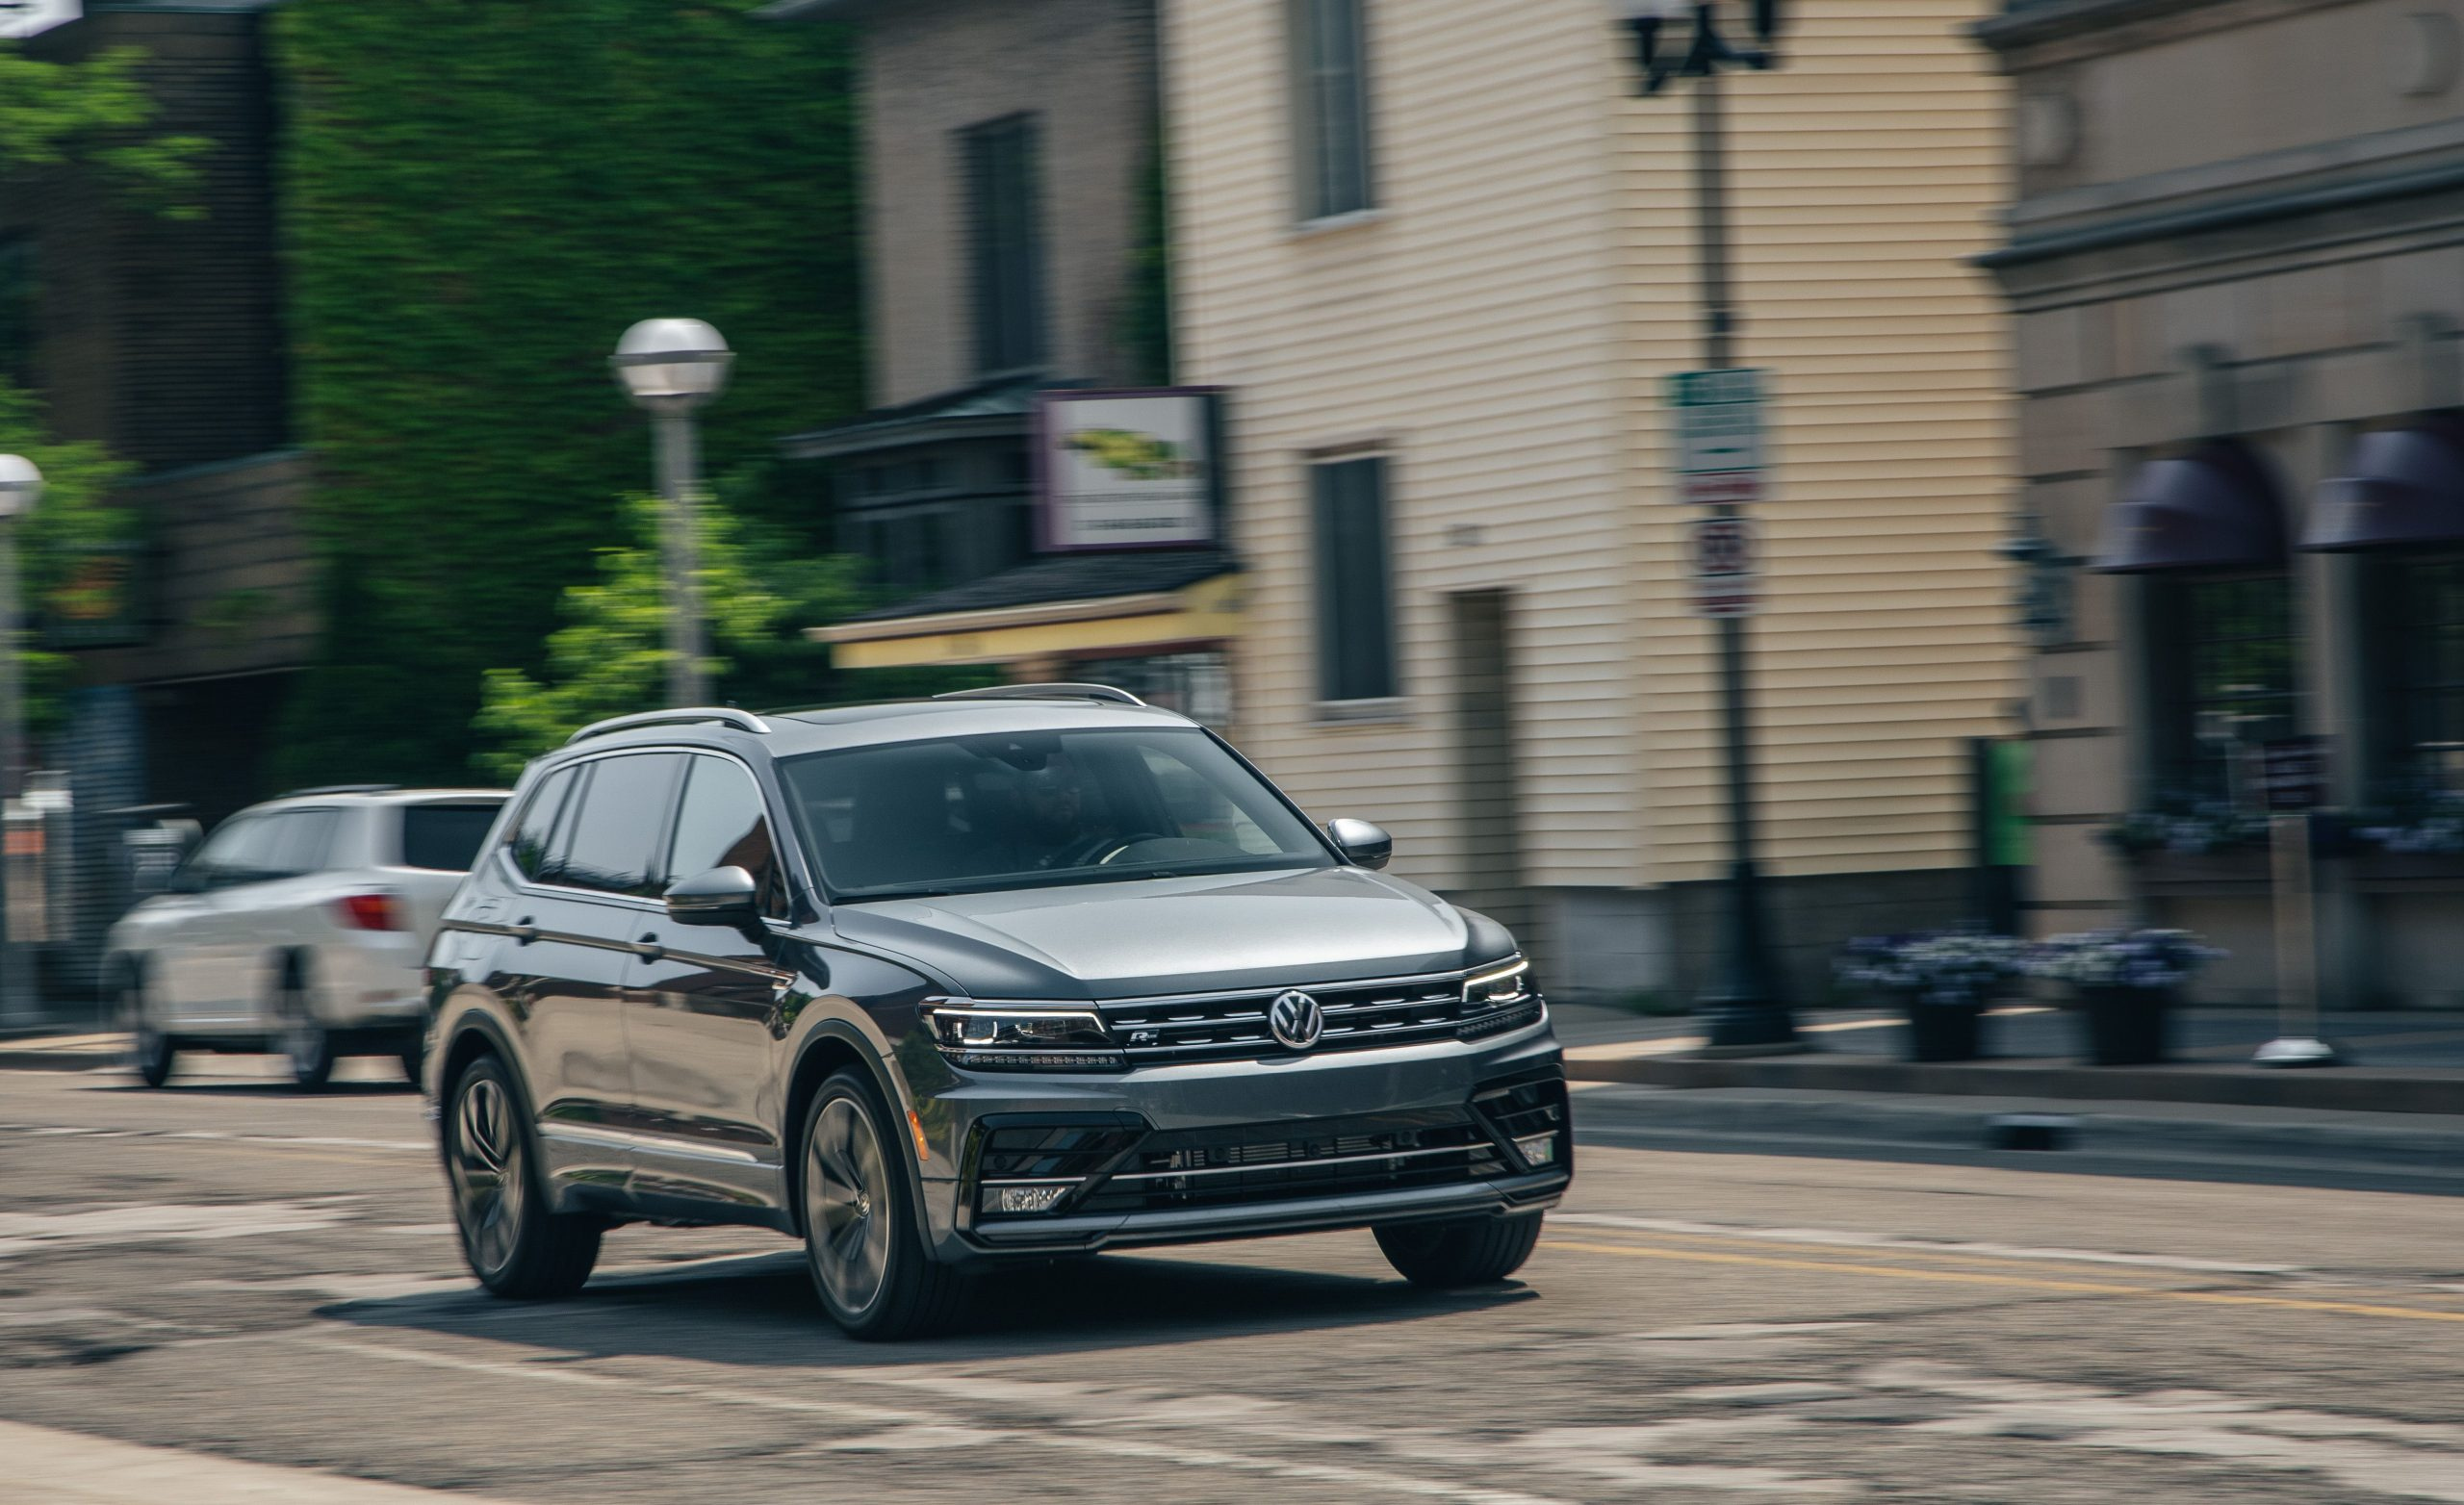 2021 Volkswagen Touareg 7 Seater Gas Mileage Lease Price